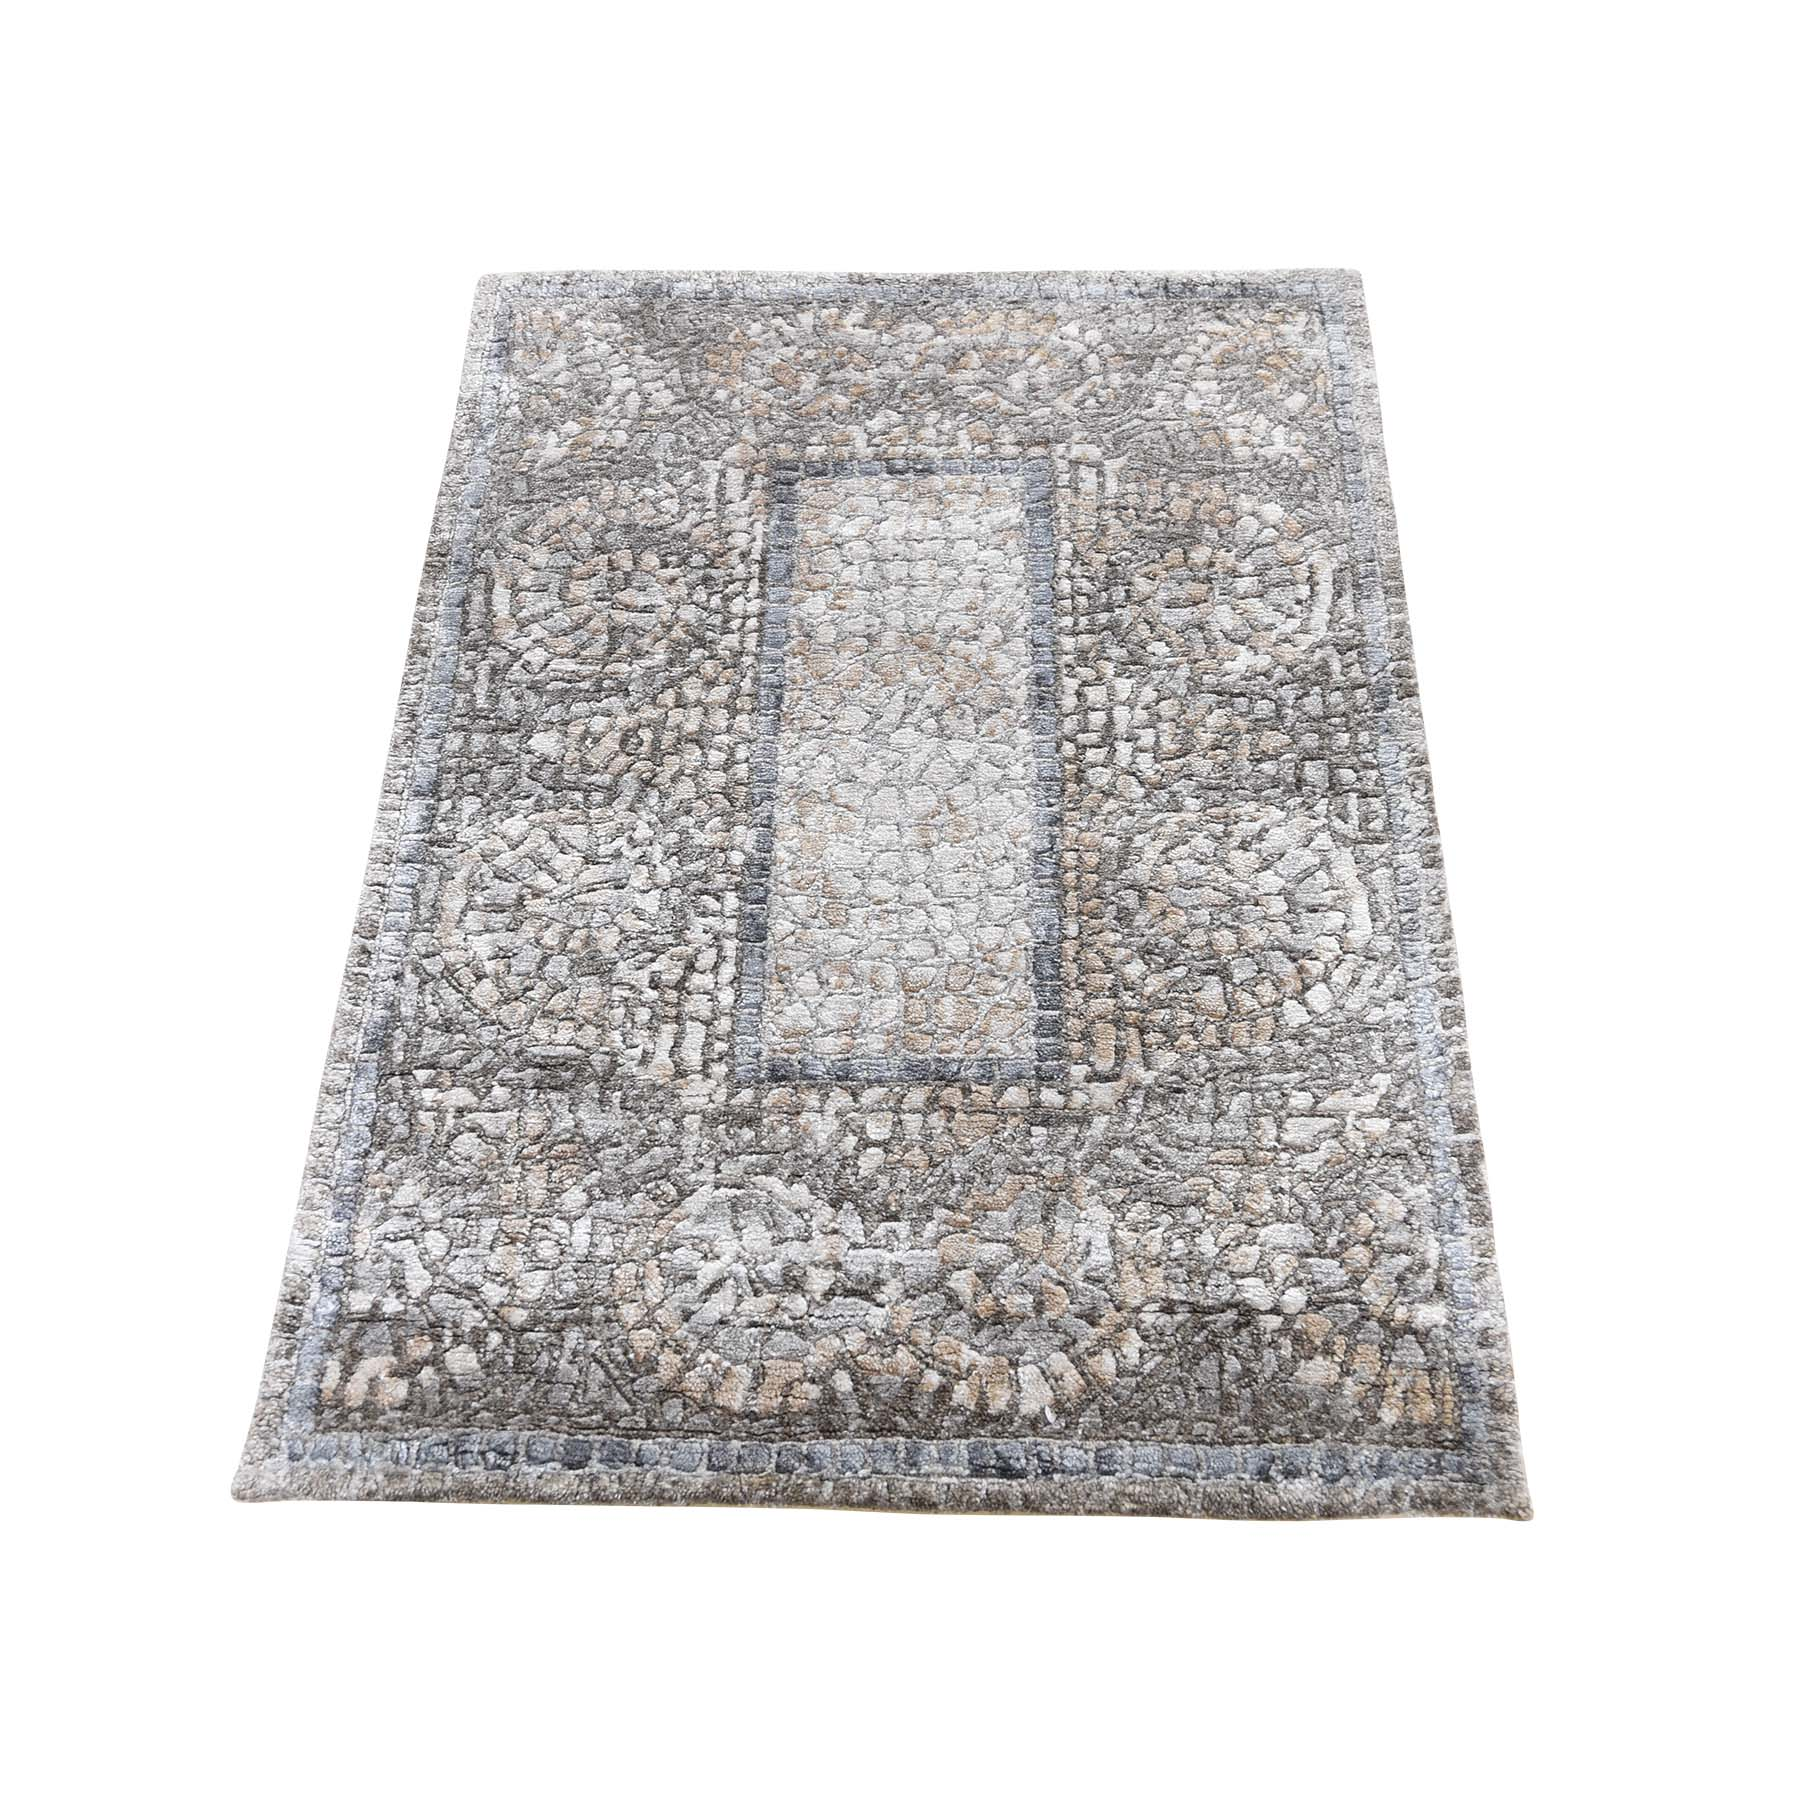 """2'1""""x3' Ivory And Taupe Silken Roman Mosaic Design Hand-Knotted Oriental Rug"""